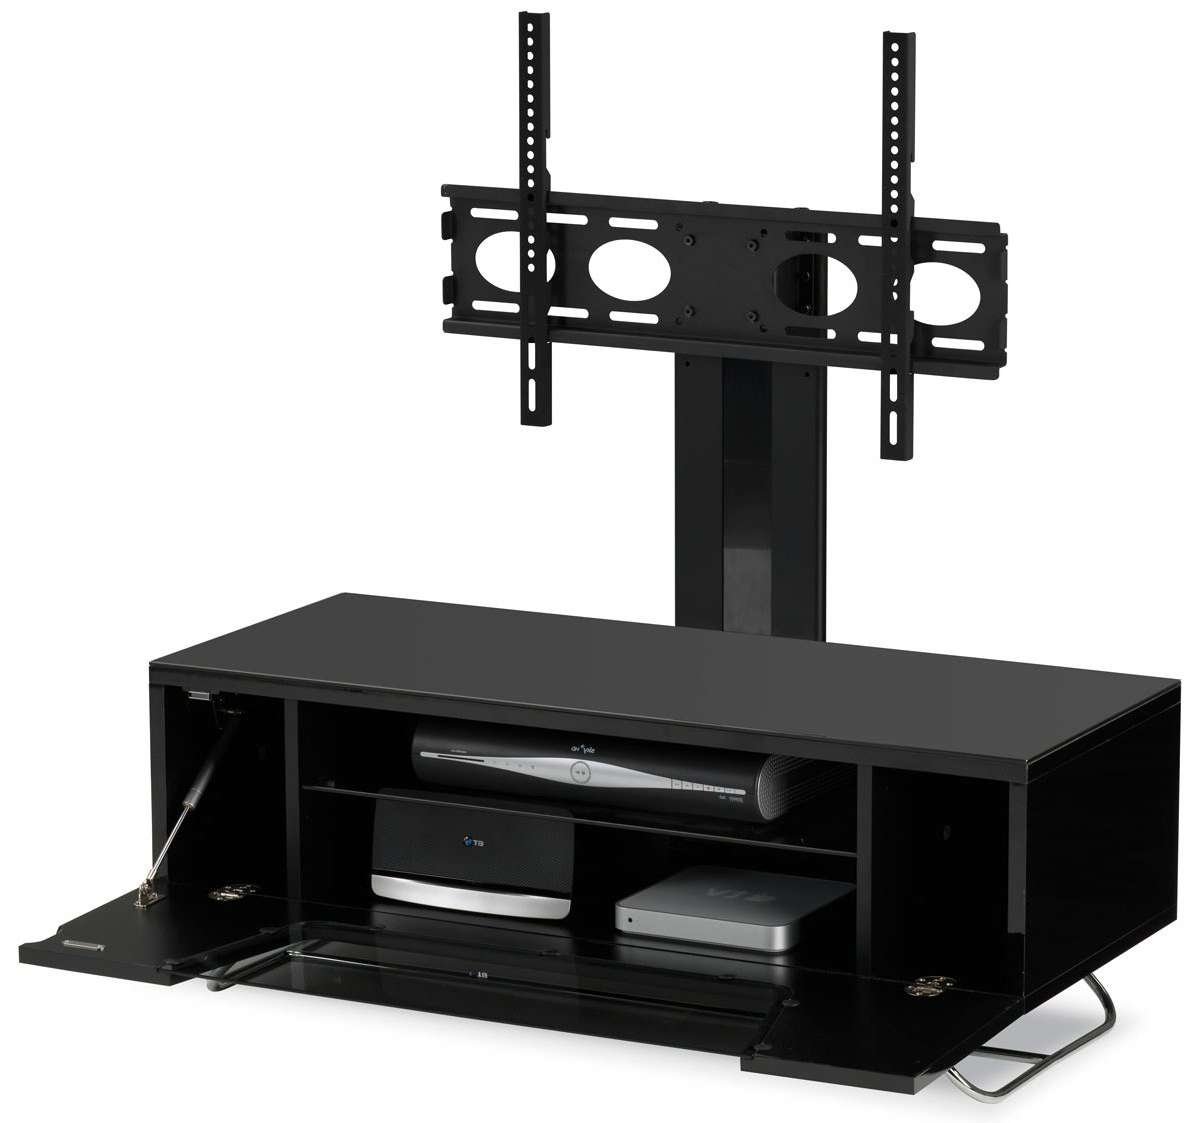 Alphason Chromium Black Cantilever Tv Stand Regarding Cantilever Tv Stands (View 2 of 15)